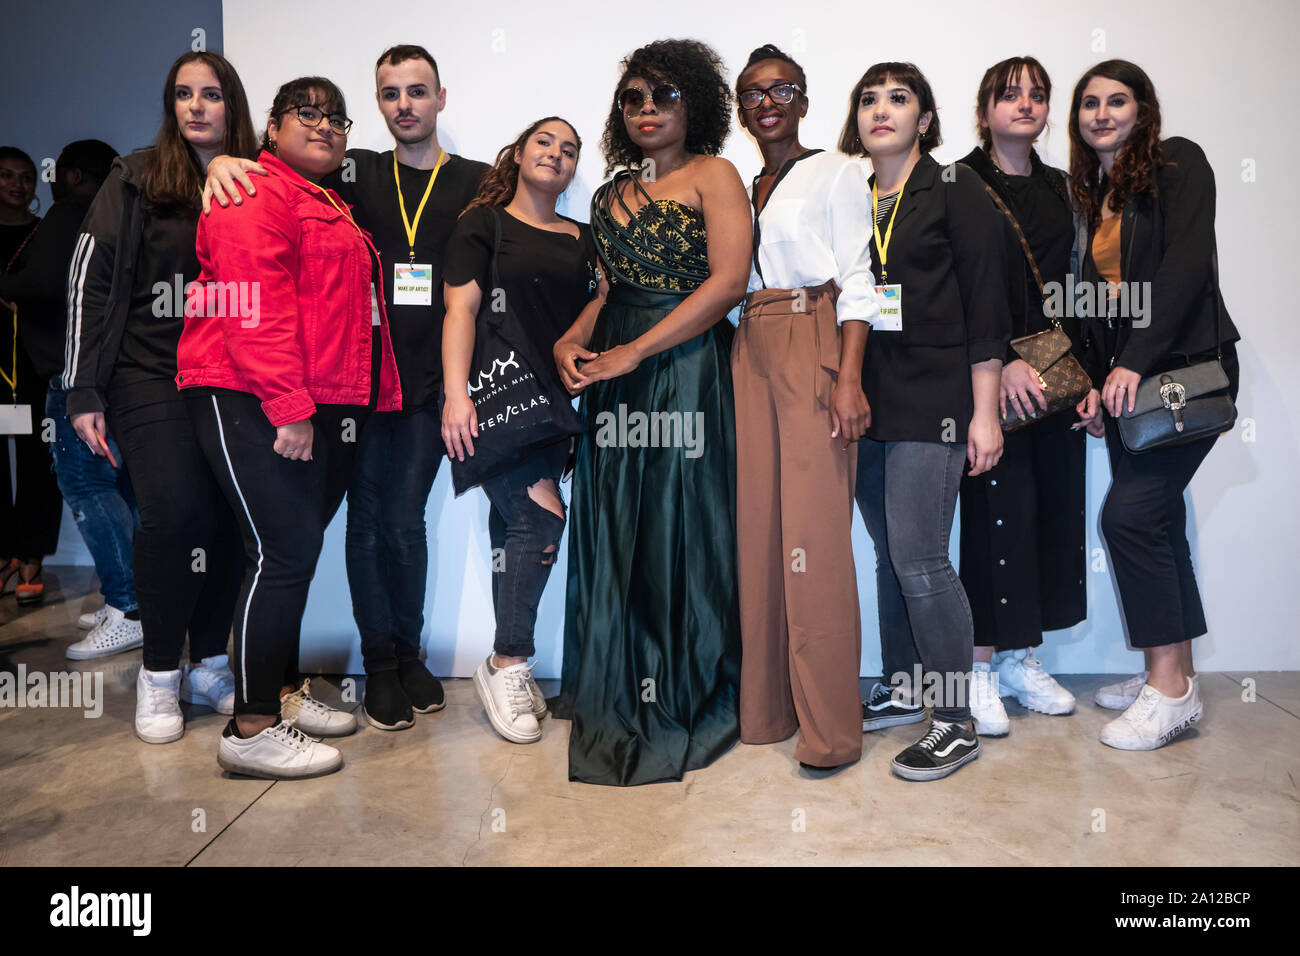 Michelle Francine Ngonmo President Of Afro Fashion And Ruth Akutu Maccarthy Vice President Pose For A Photo With Makeup Artists During The Event The Fourth Edition Of The Afro Fashion Week Organised By Michelle